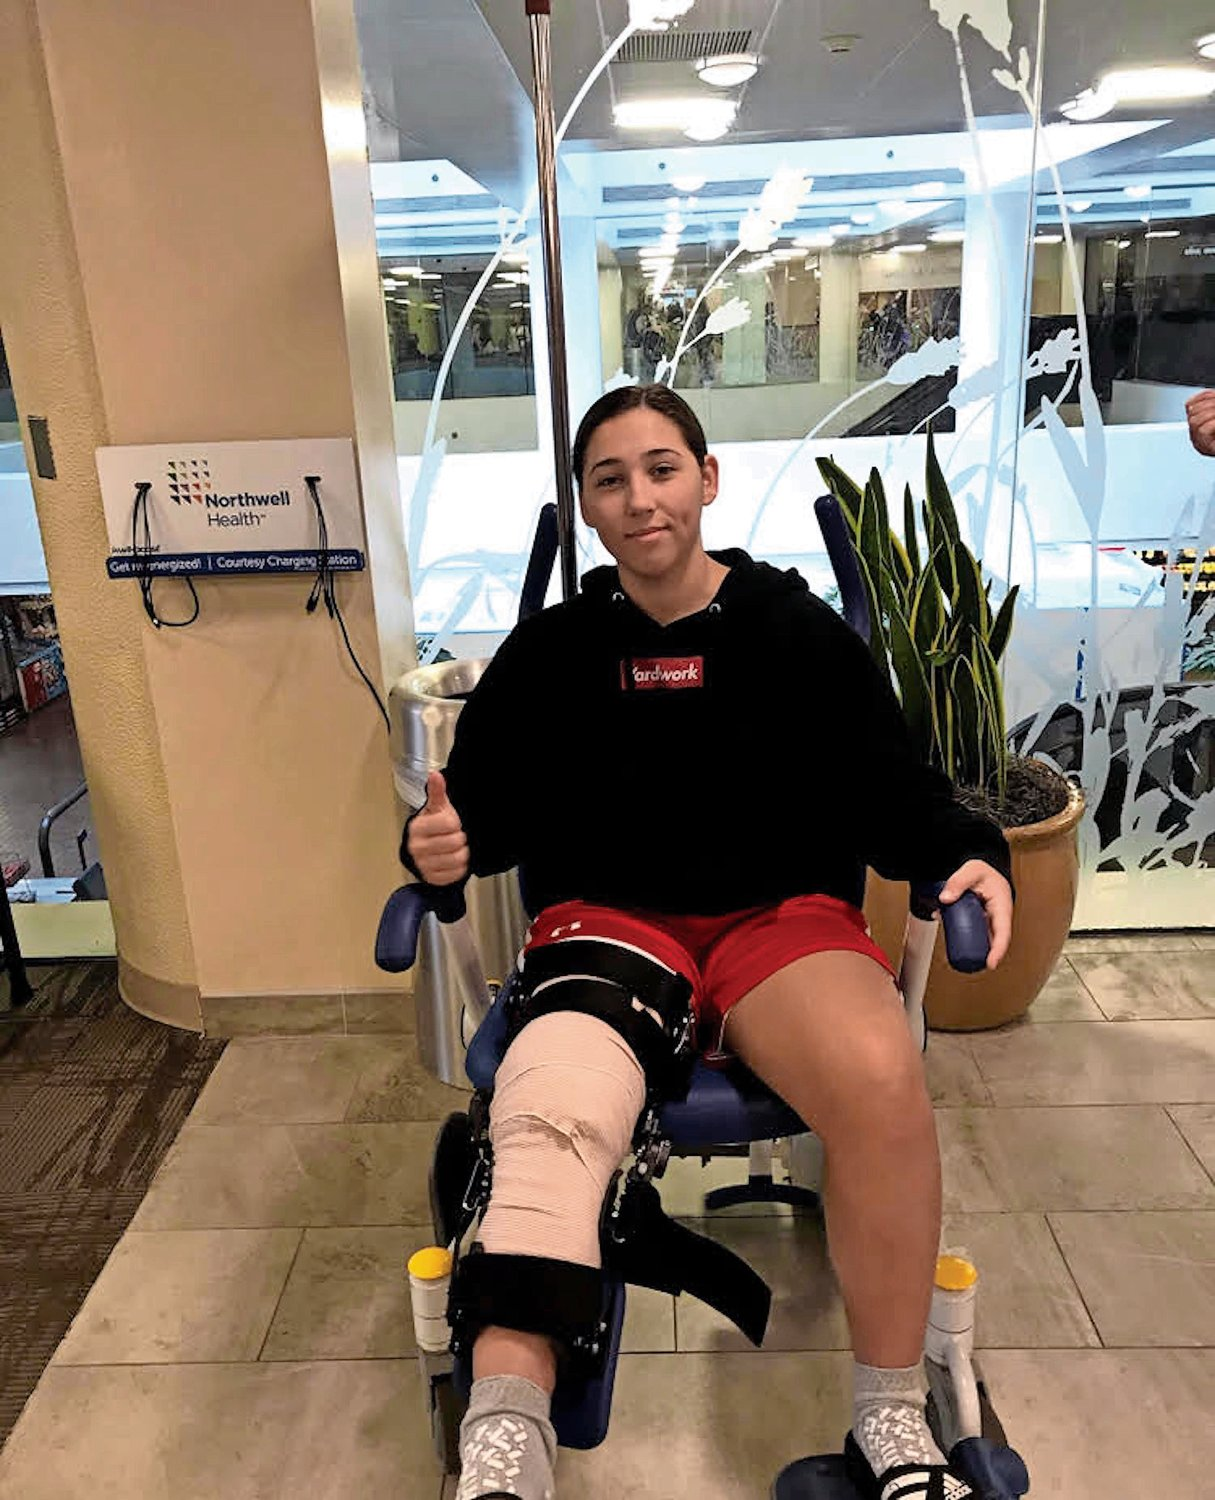 Days after her second surgery, Dellacroce stretched her leg in a wheelchair.